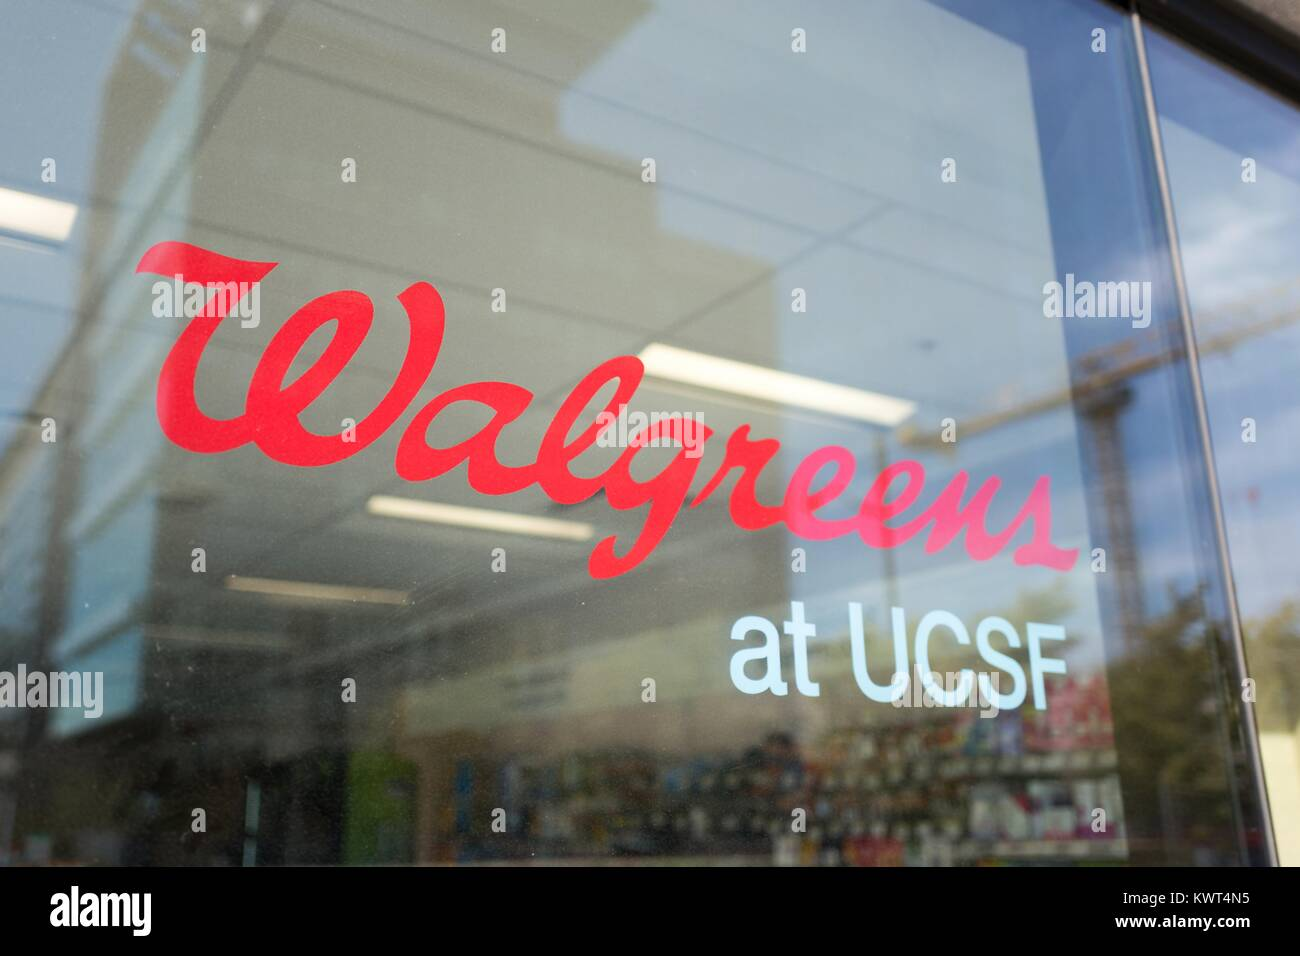 Ucsf Stock Photos & Ucsf Stock Images - Alamy